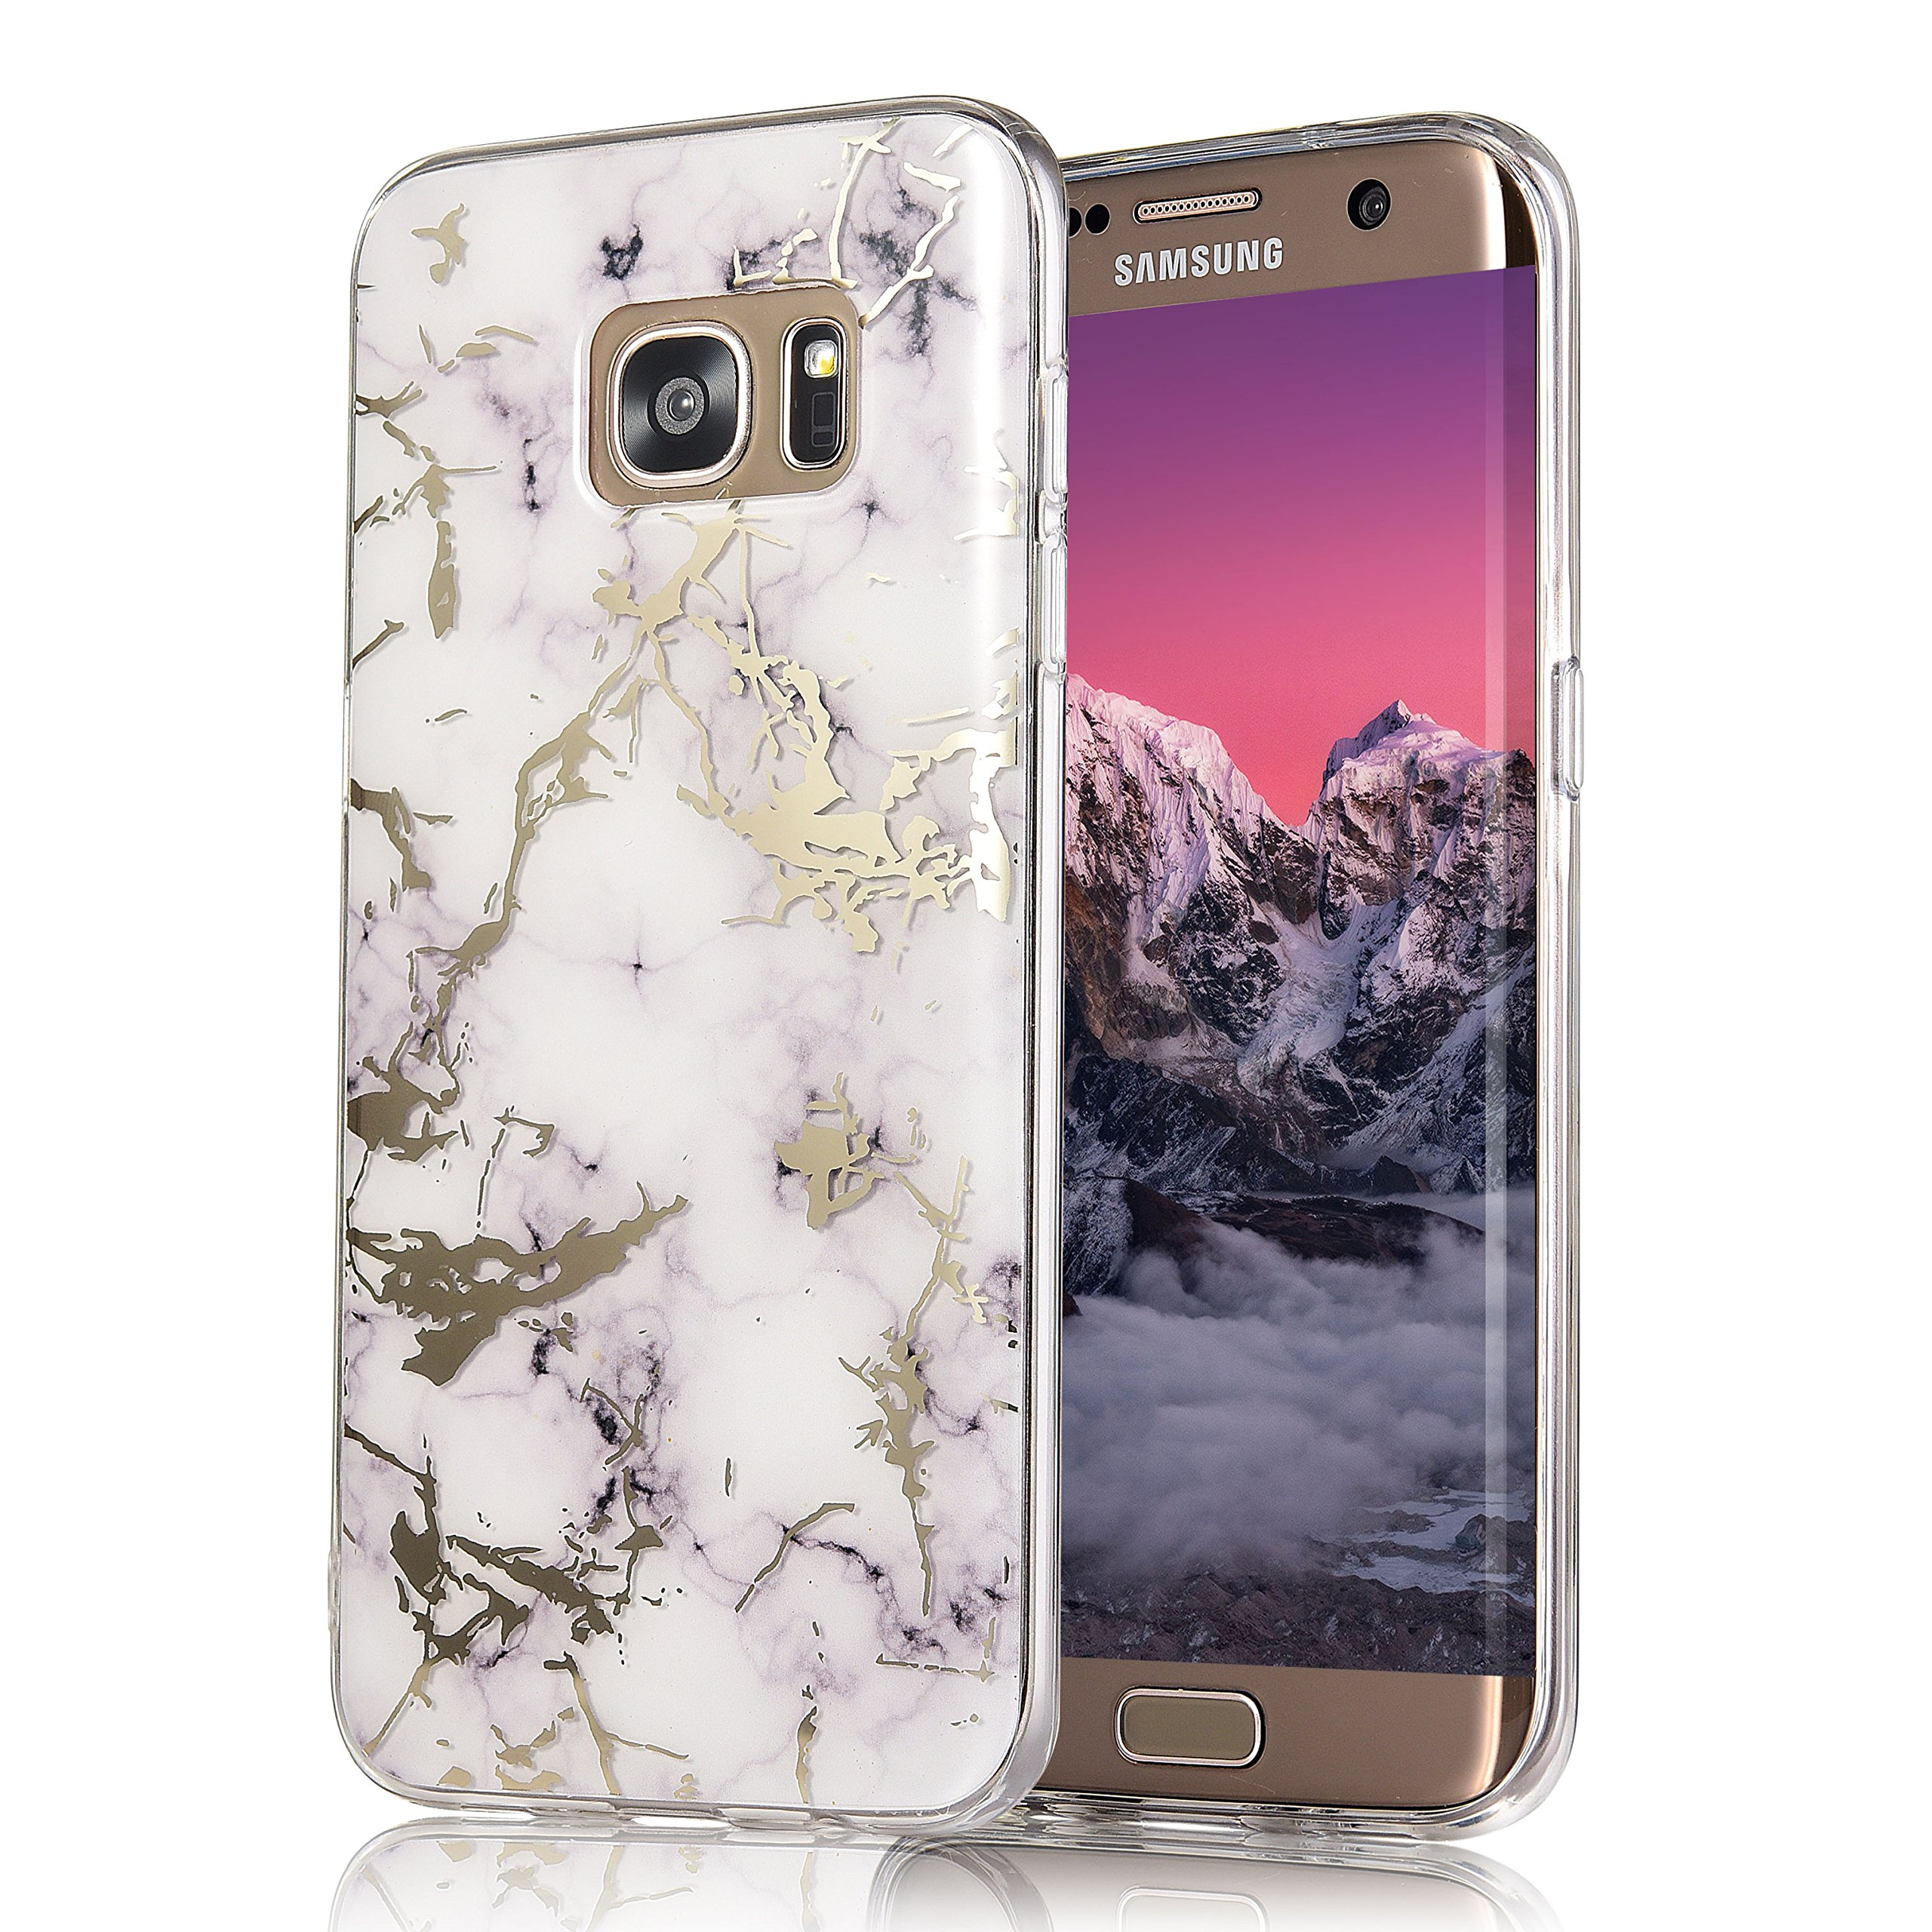 Galaxy S7 Edge Case, COSANO Premium Quality [UV print Semi-transparent Case] for Samsung Galaxy S7 Edge (5.5 inch) Scratch Resistant Shock-Absorbing Case Soft Flexible TPU (White Marble S7edge) by COSANO